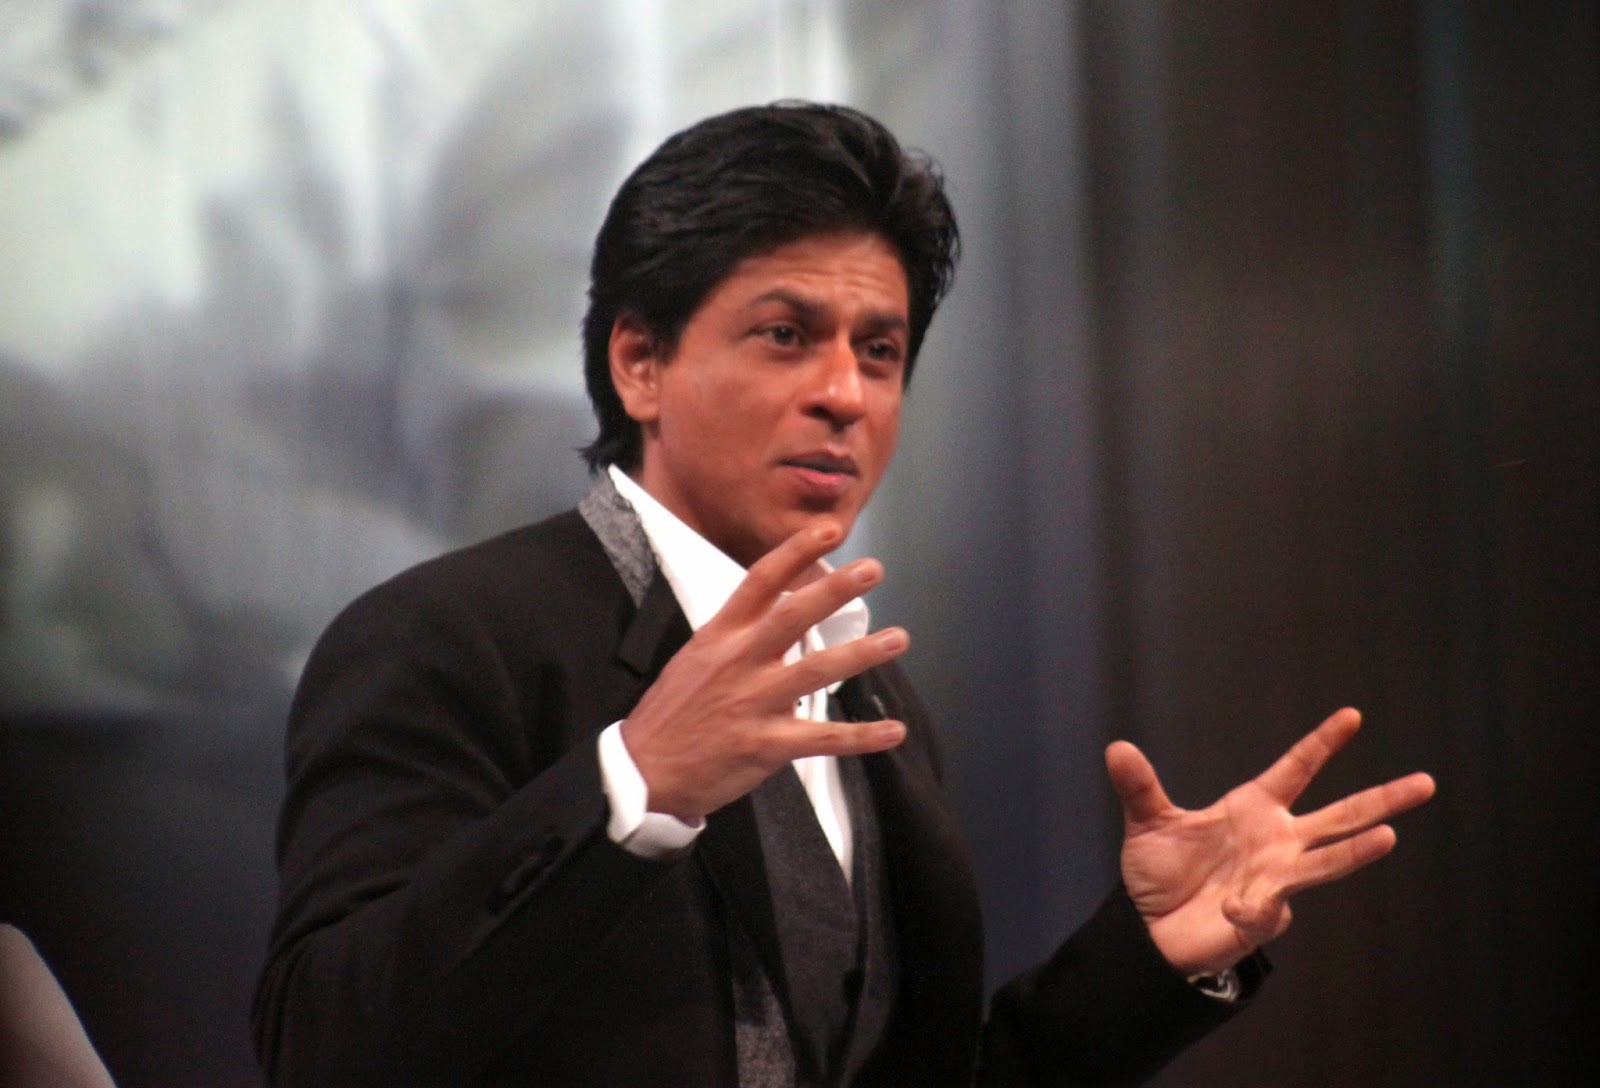 Wallpapers Wisely: Shah Rukh Khan Full HD Wallpapers